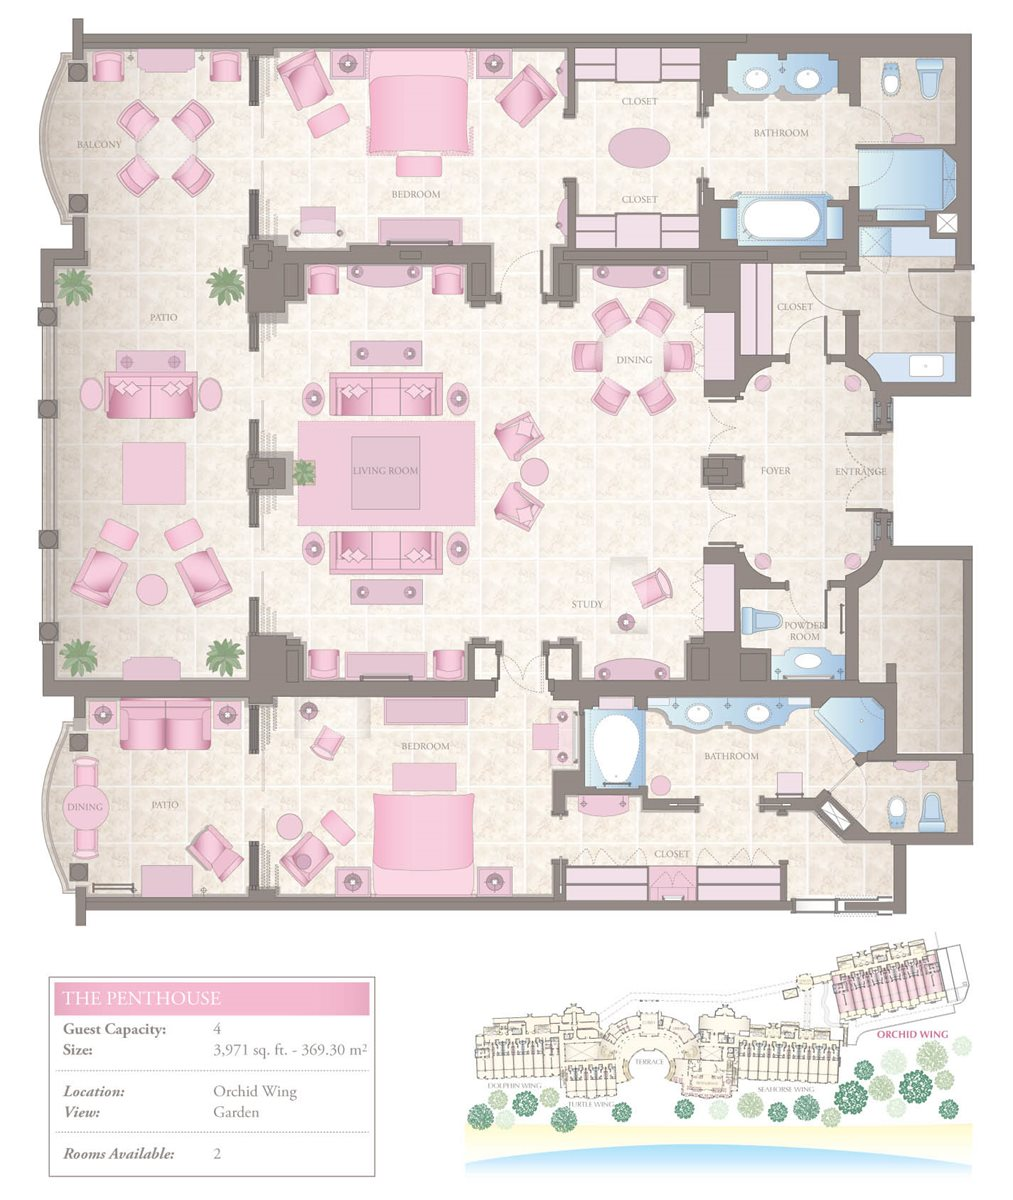 Luxury Two-Bedroom Penthouse Floorplan